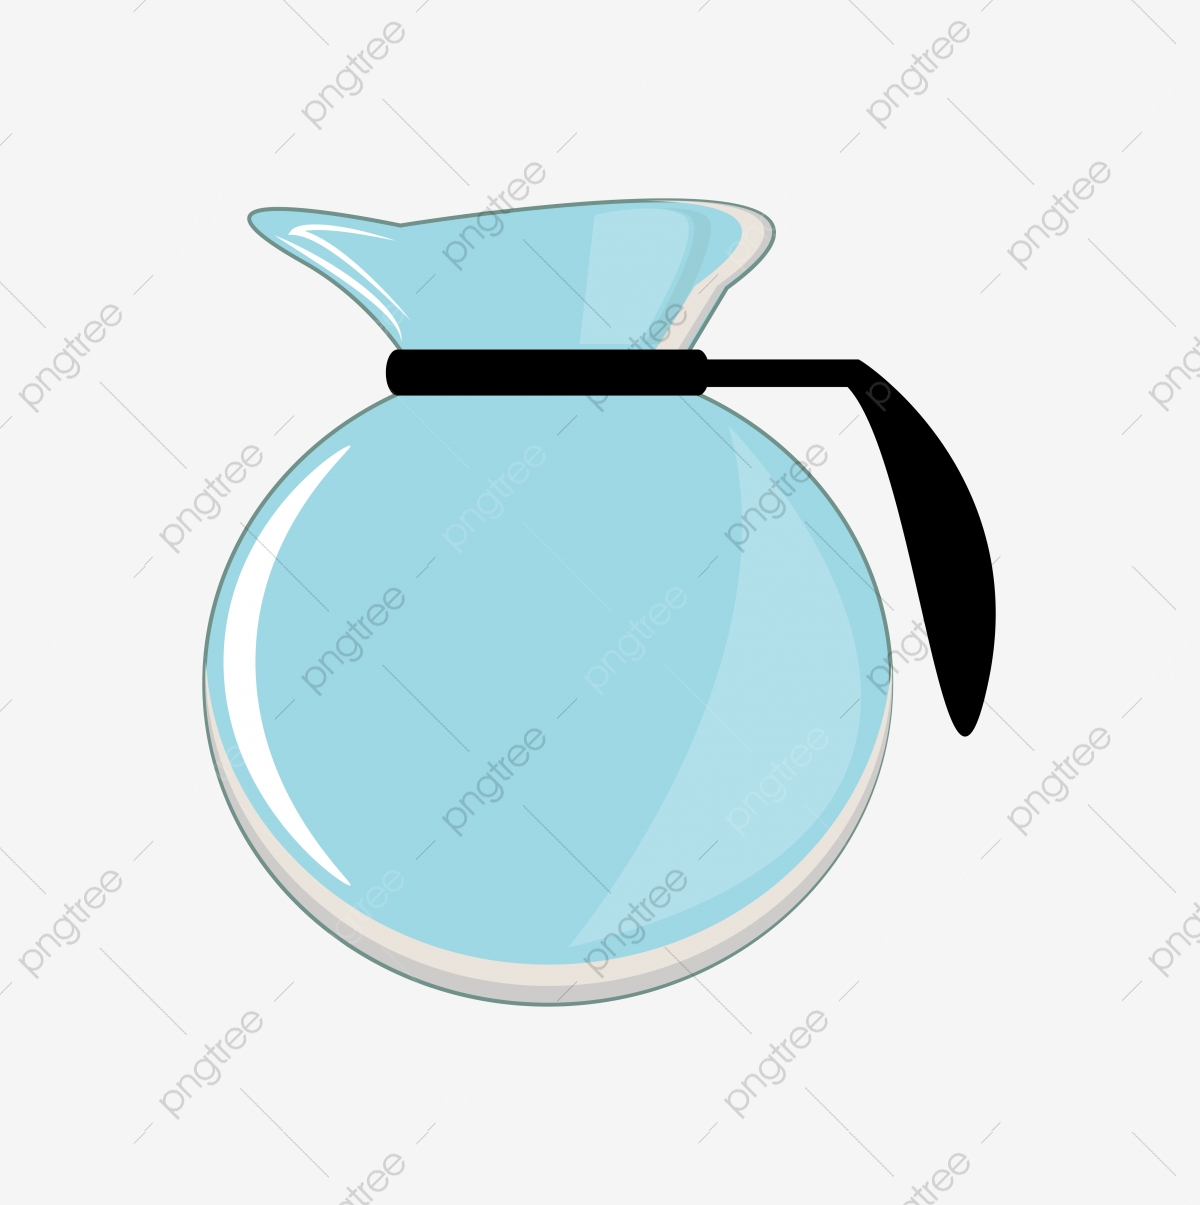 Free Water Pitcher Cliparts, Download Free Clip Art, Free Clip Art on  Clipart Library